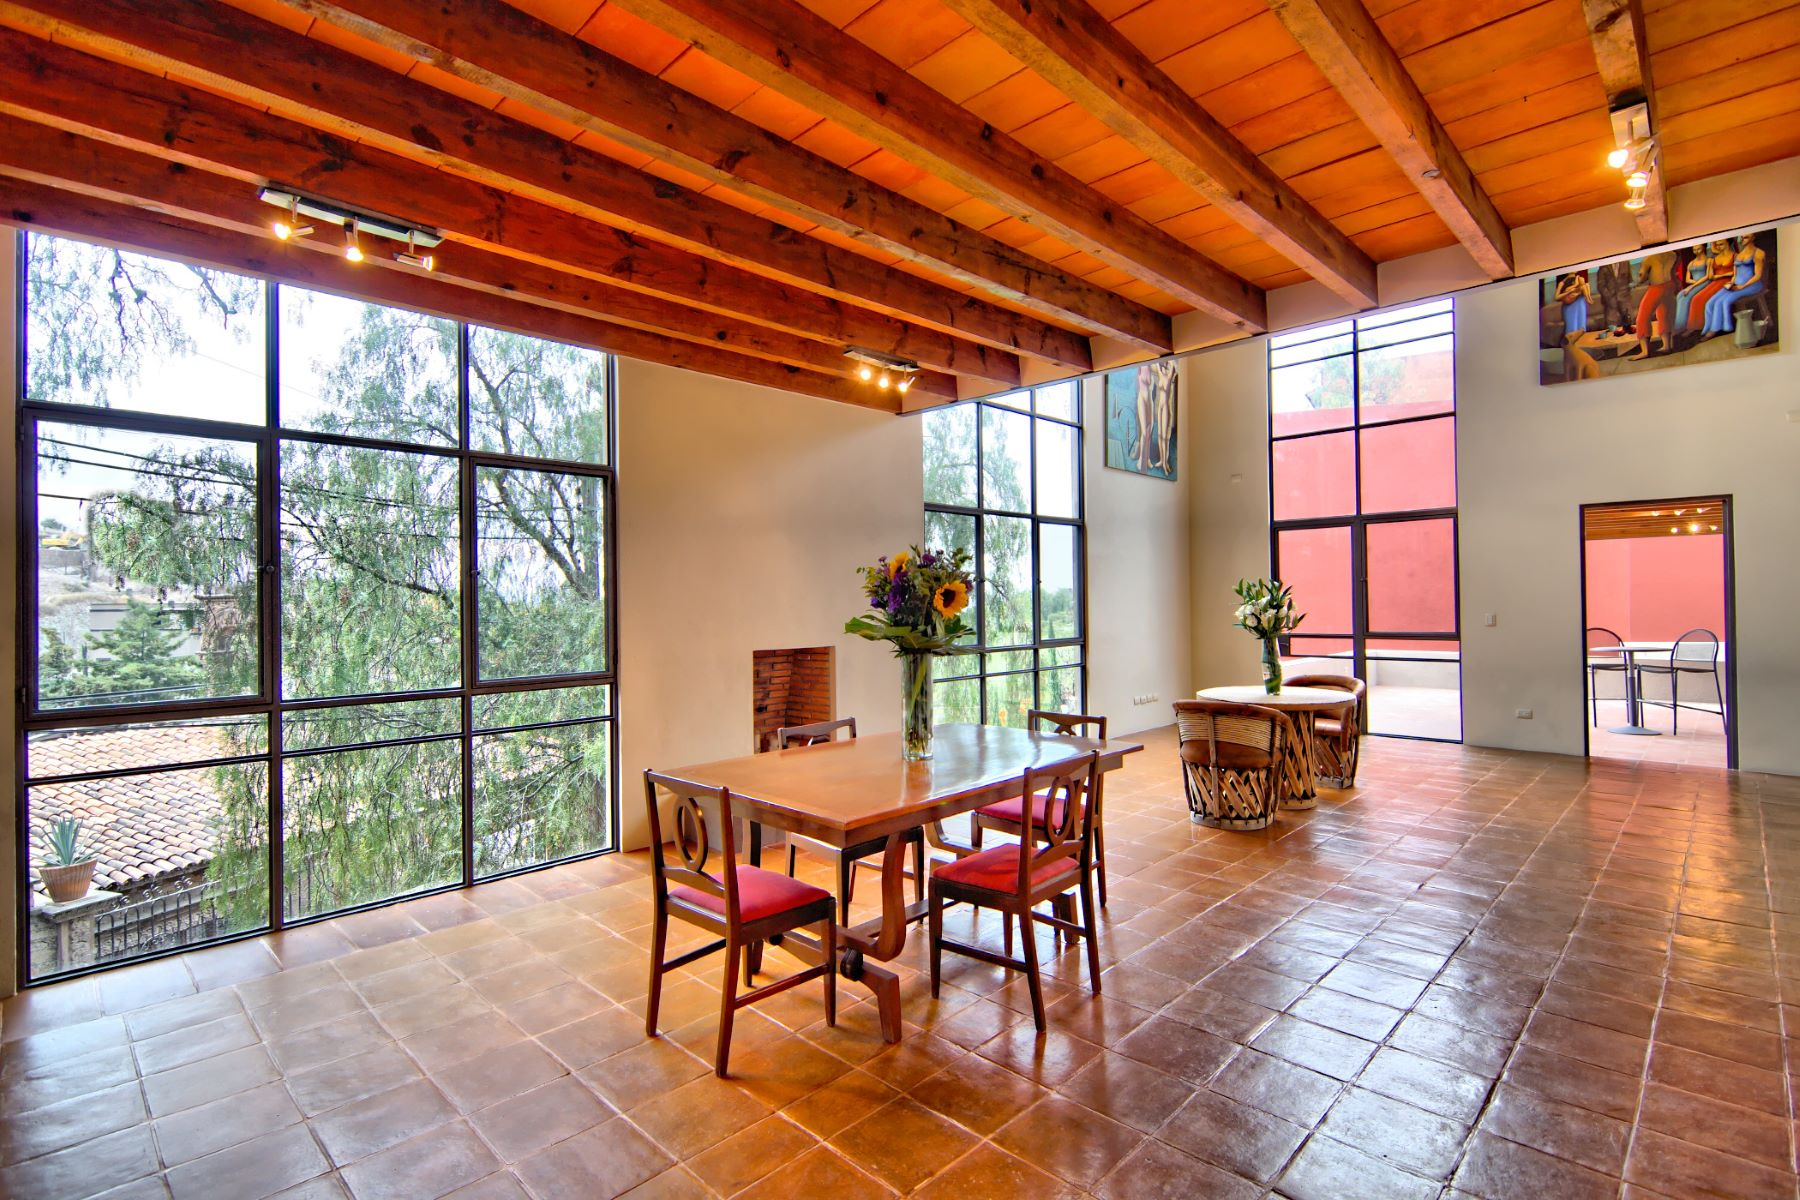 Additional photo for property listing at Casa Galerias Atascadero San Miguel De Allende, Guanajuato 37740 Mexico